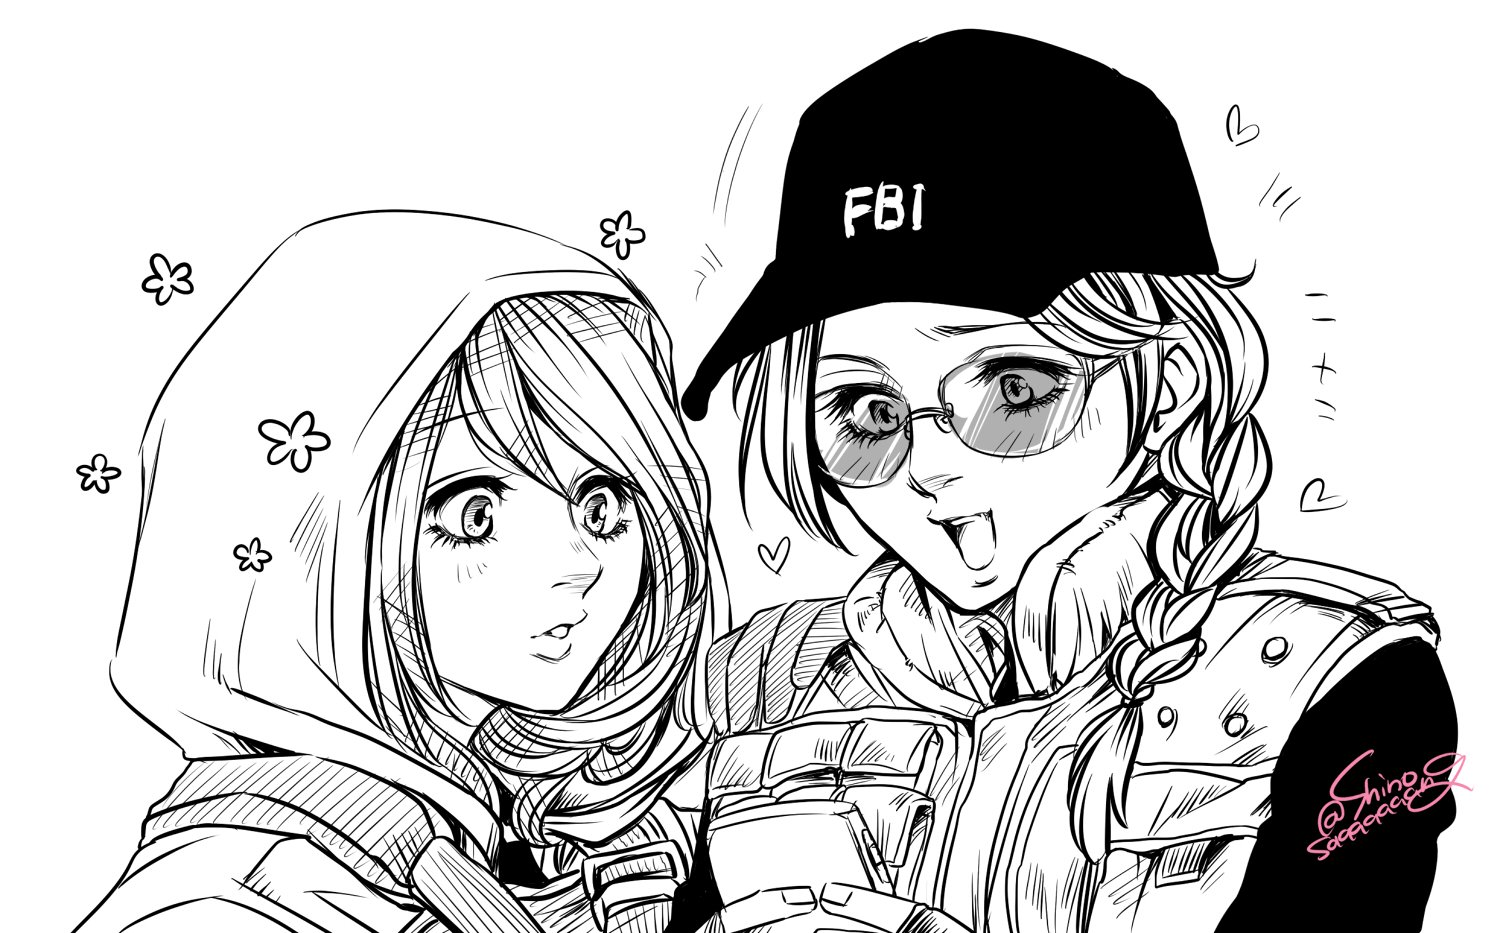 Hibana Jealous From Who Rainbow6